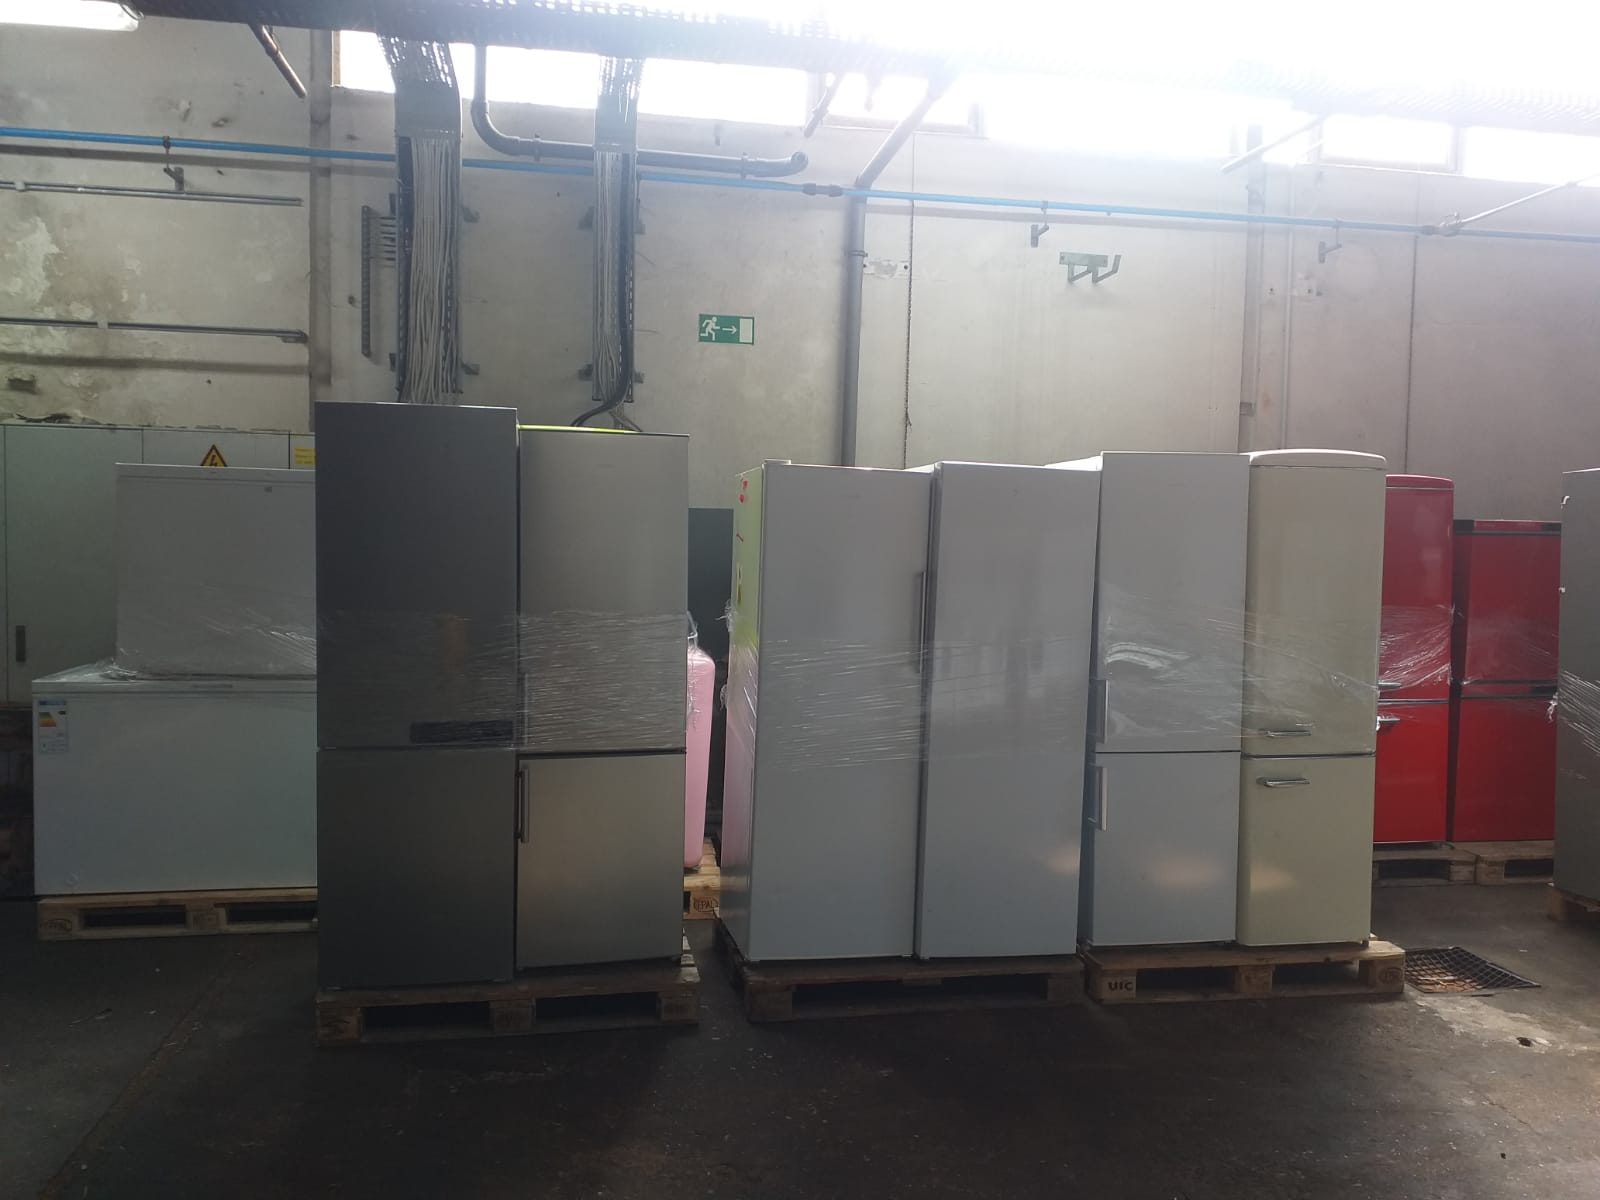 38536 - Washing machine fridges Europe